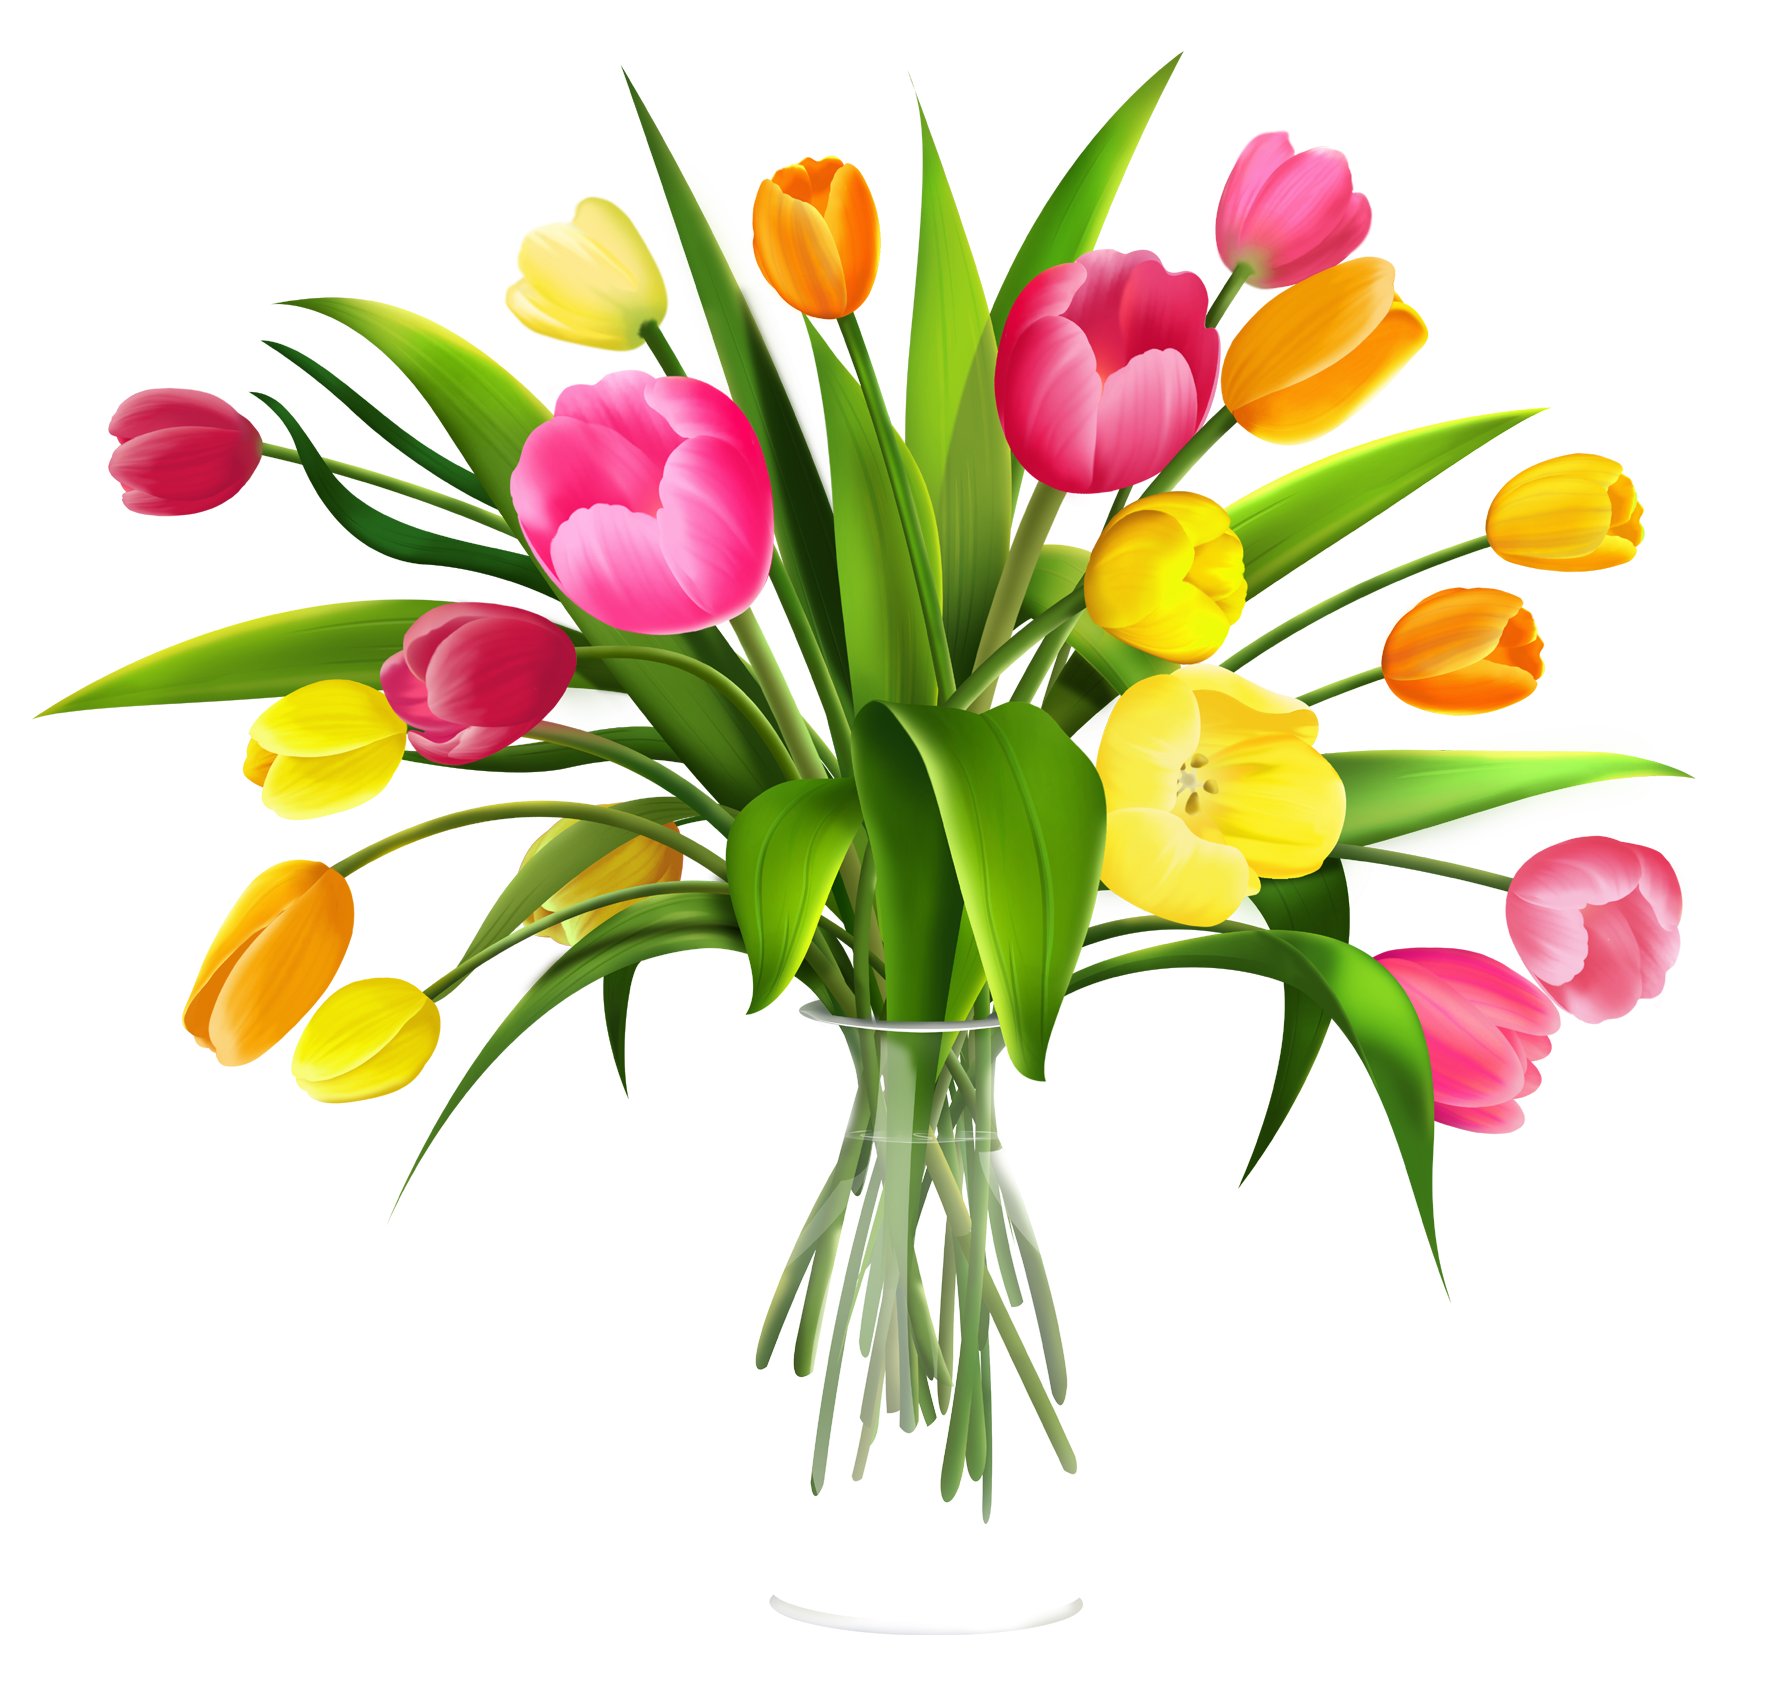 Free Clip Art Flowers In Vase Use These Free Images For